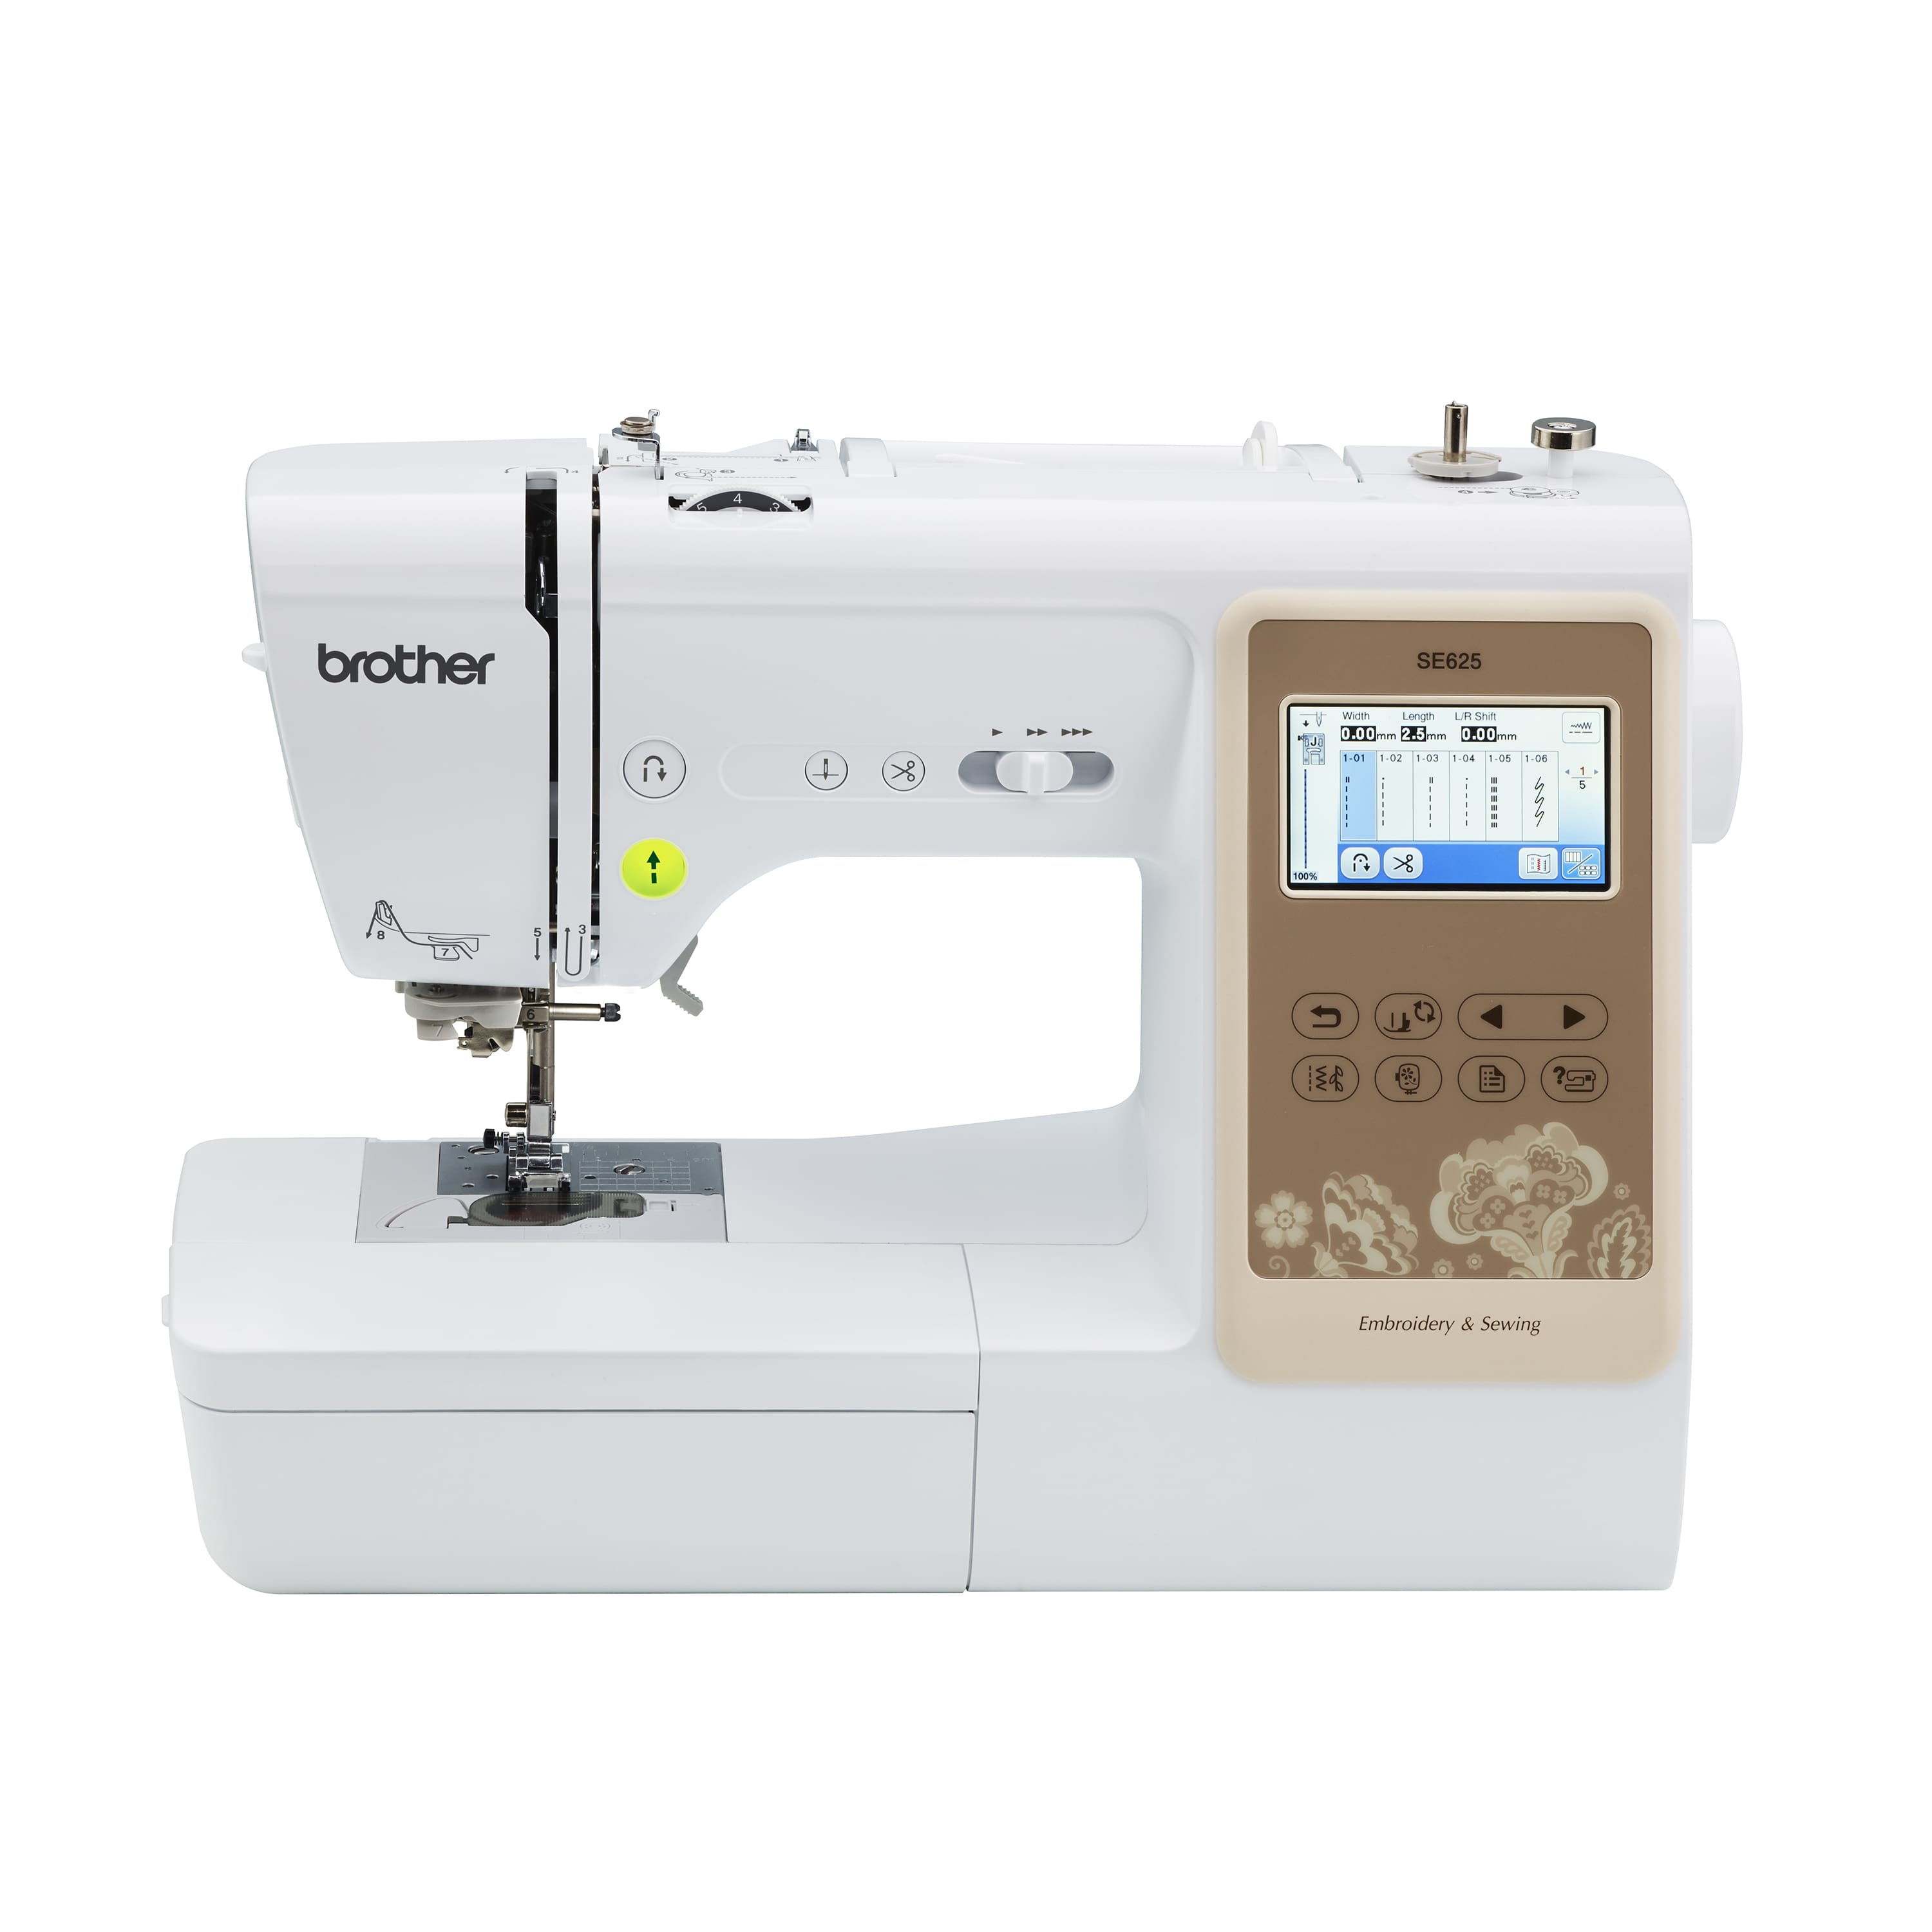 Brother SE625 Combination Computerized Sewing and 4x4 Embroidery Machine $289.99